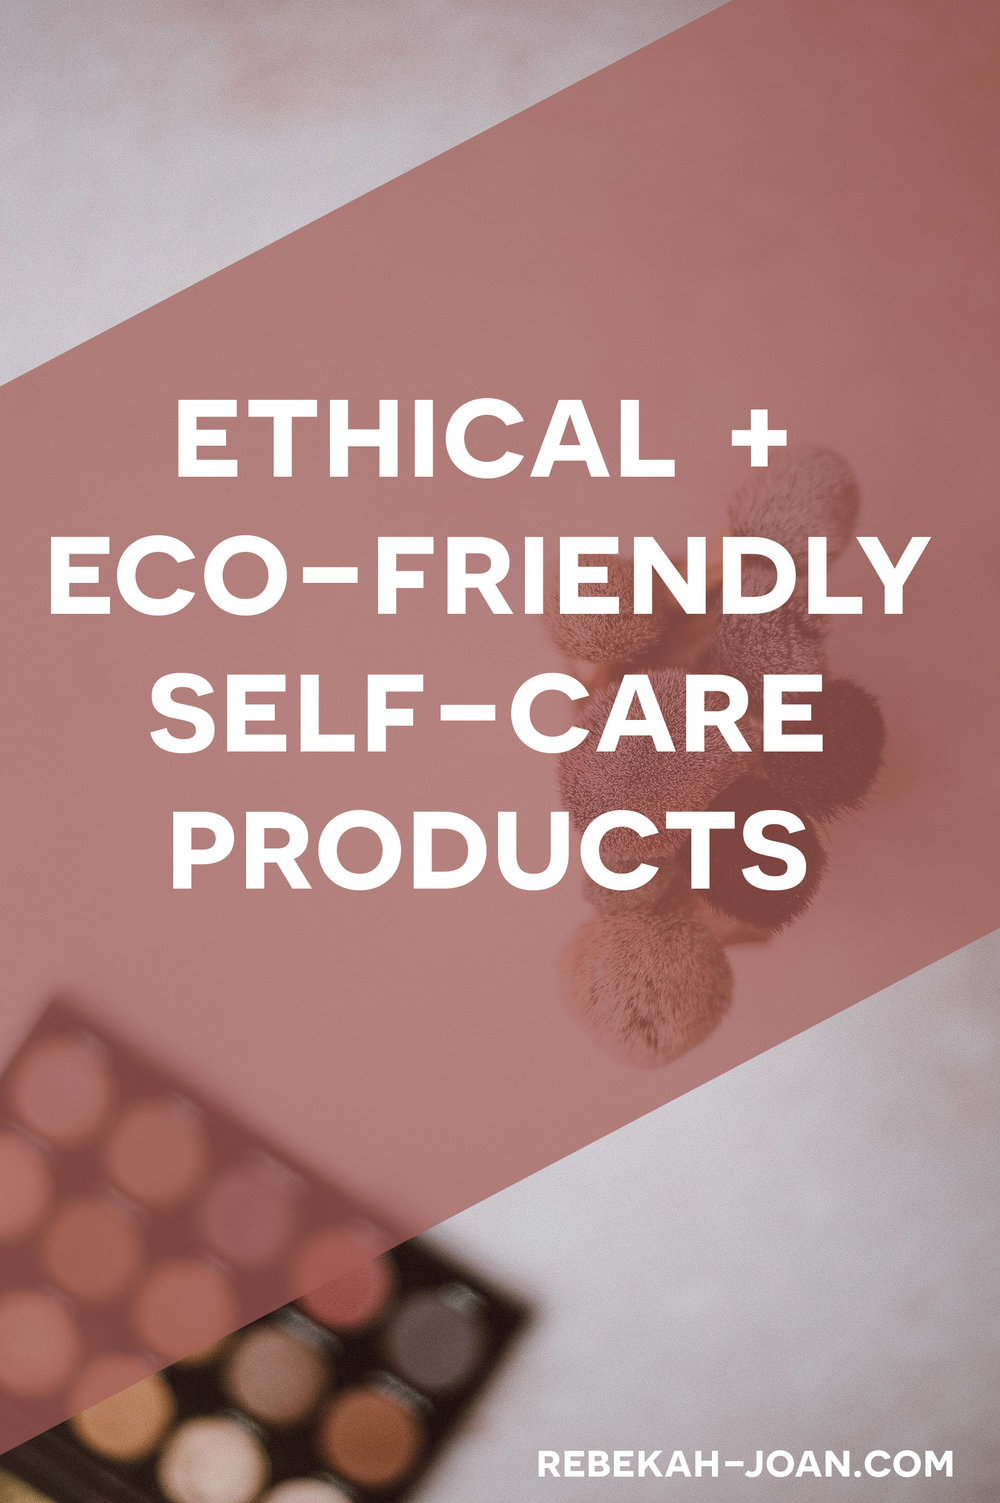 - We all use self-care products, from soaps to scrubs to tampons. But are we using the best ones? Are the products we're putting on (or in) our bodies good for us? And are they good for our environment? This post delves into a few self-care brands committed to your health + the health of our planet.